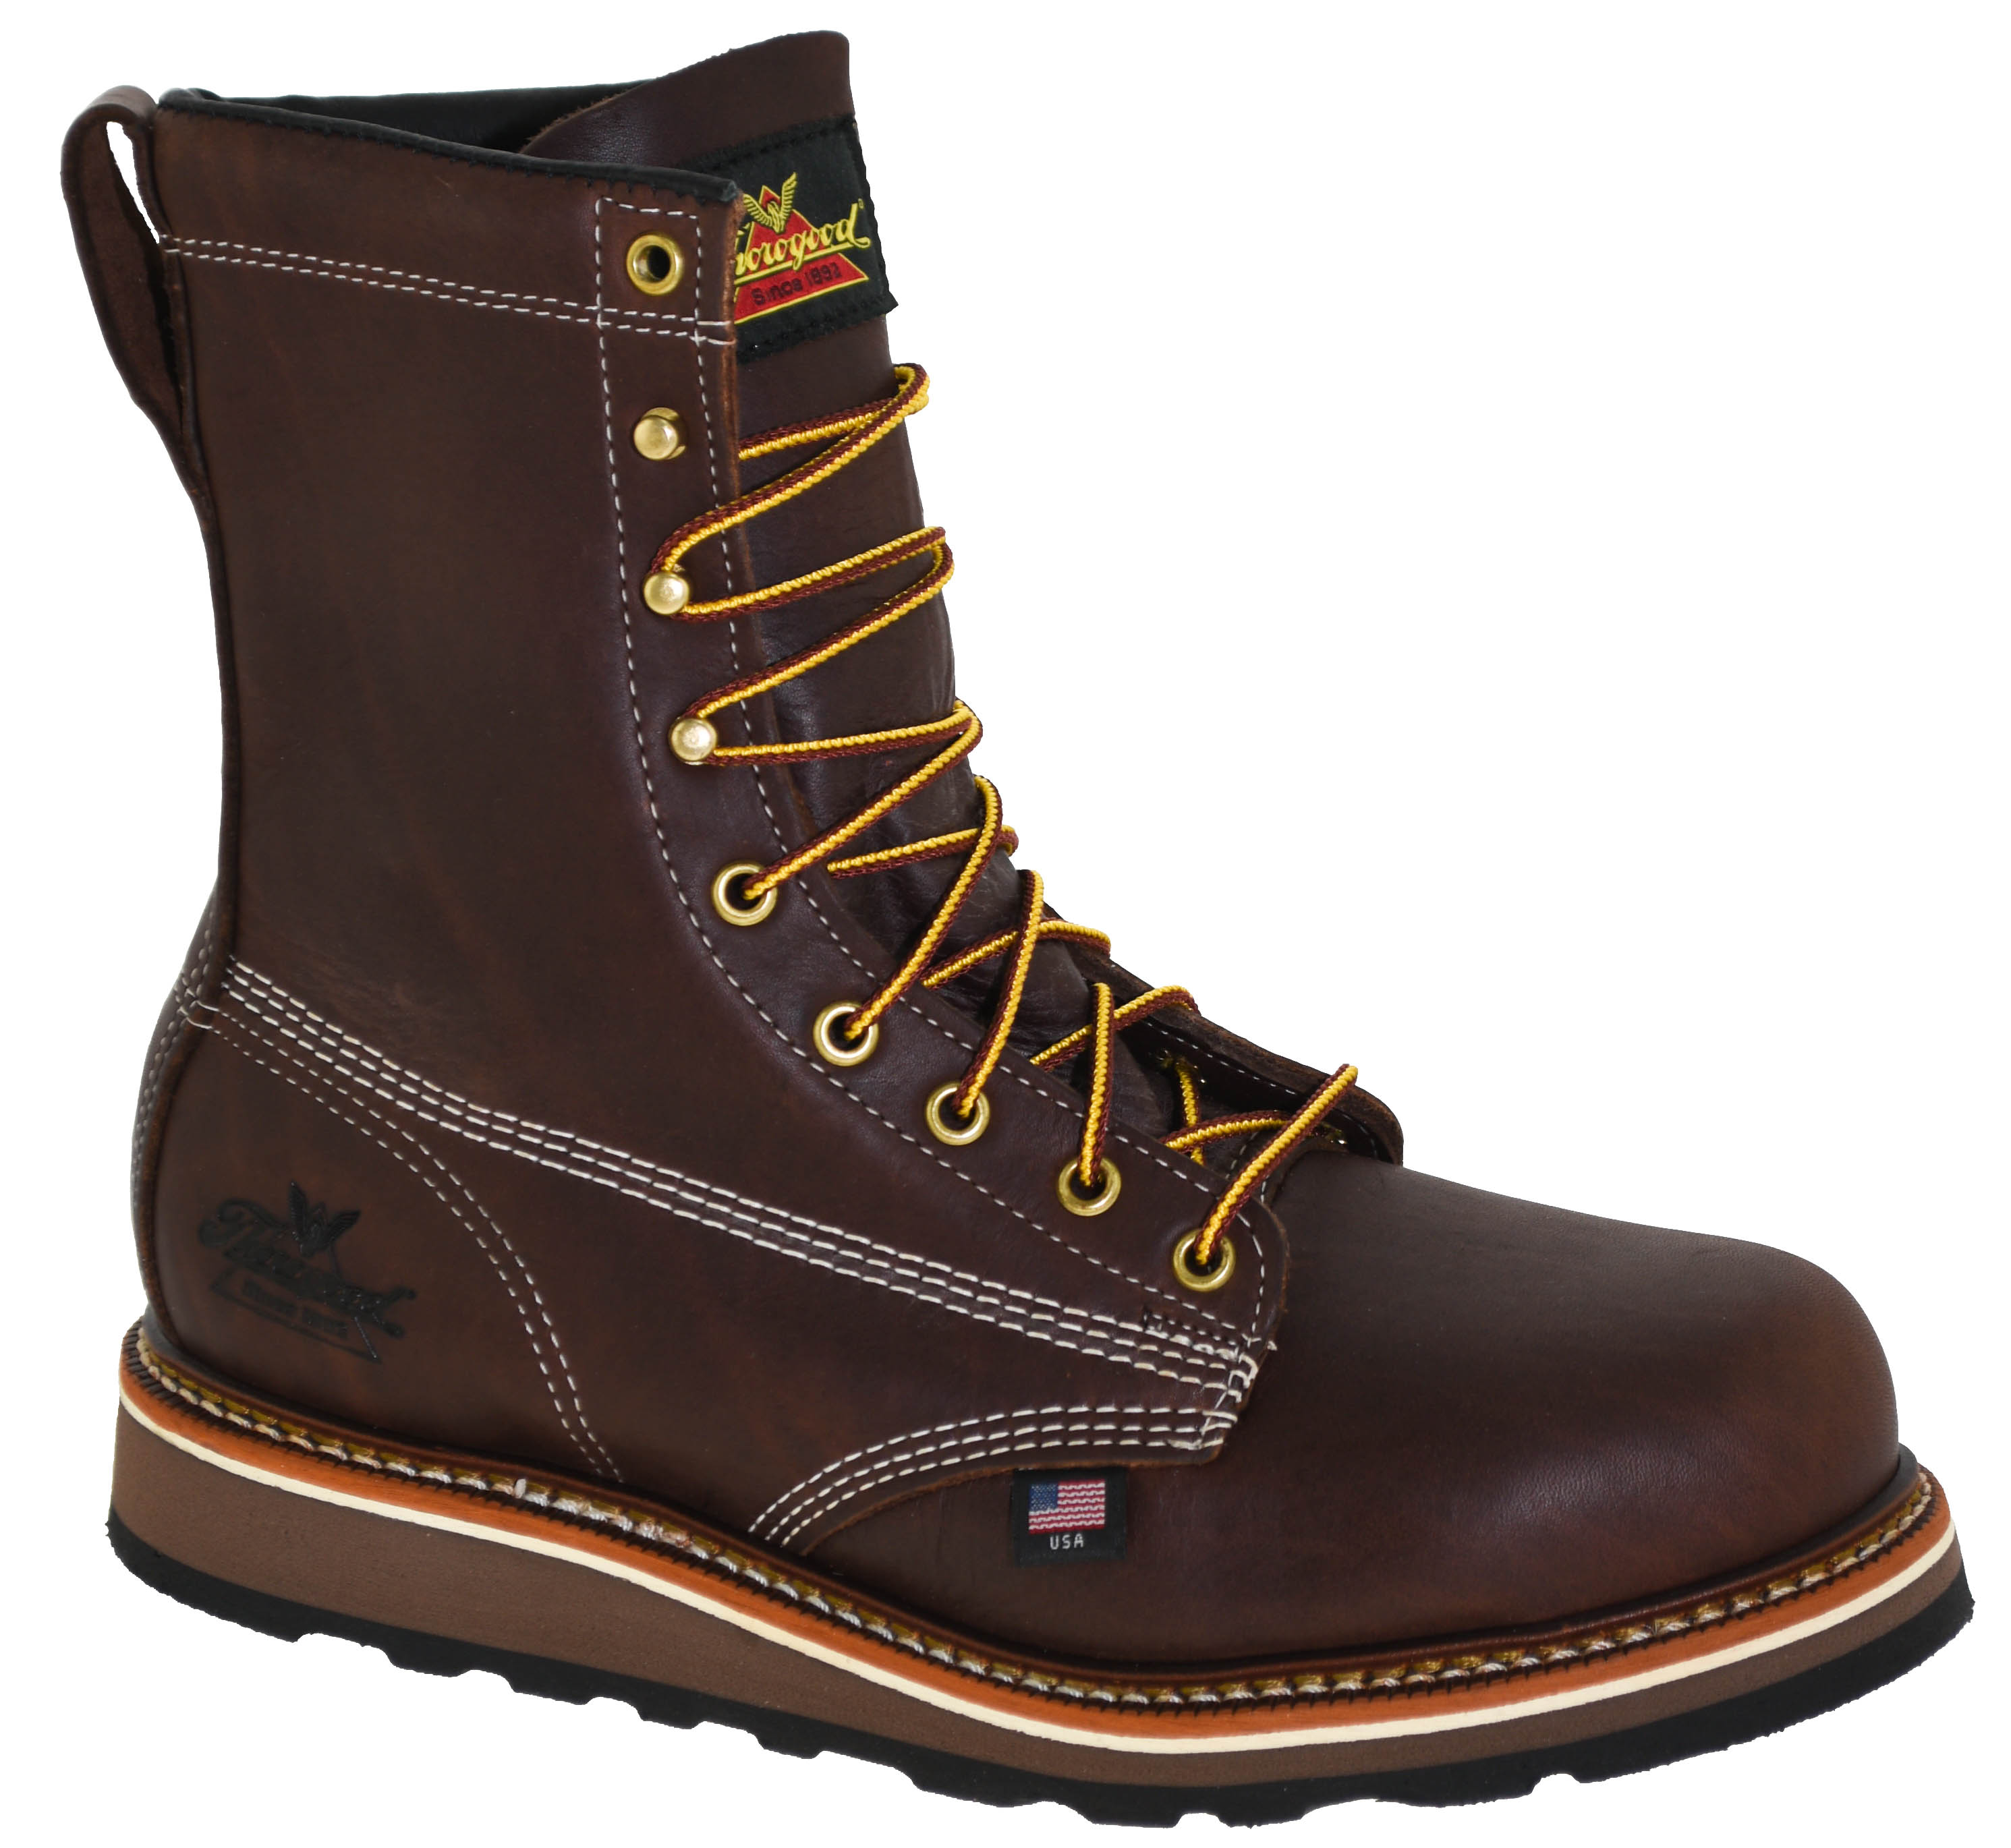 9ba05a90251 Details about Thorogood Men's American Heritage 8